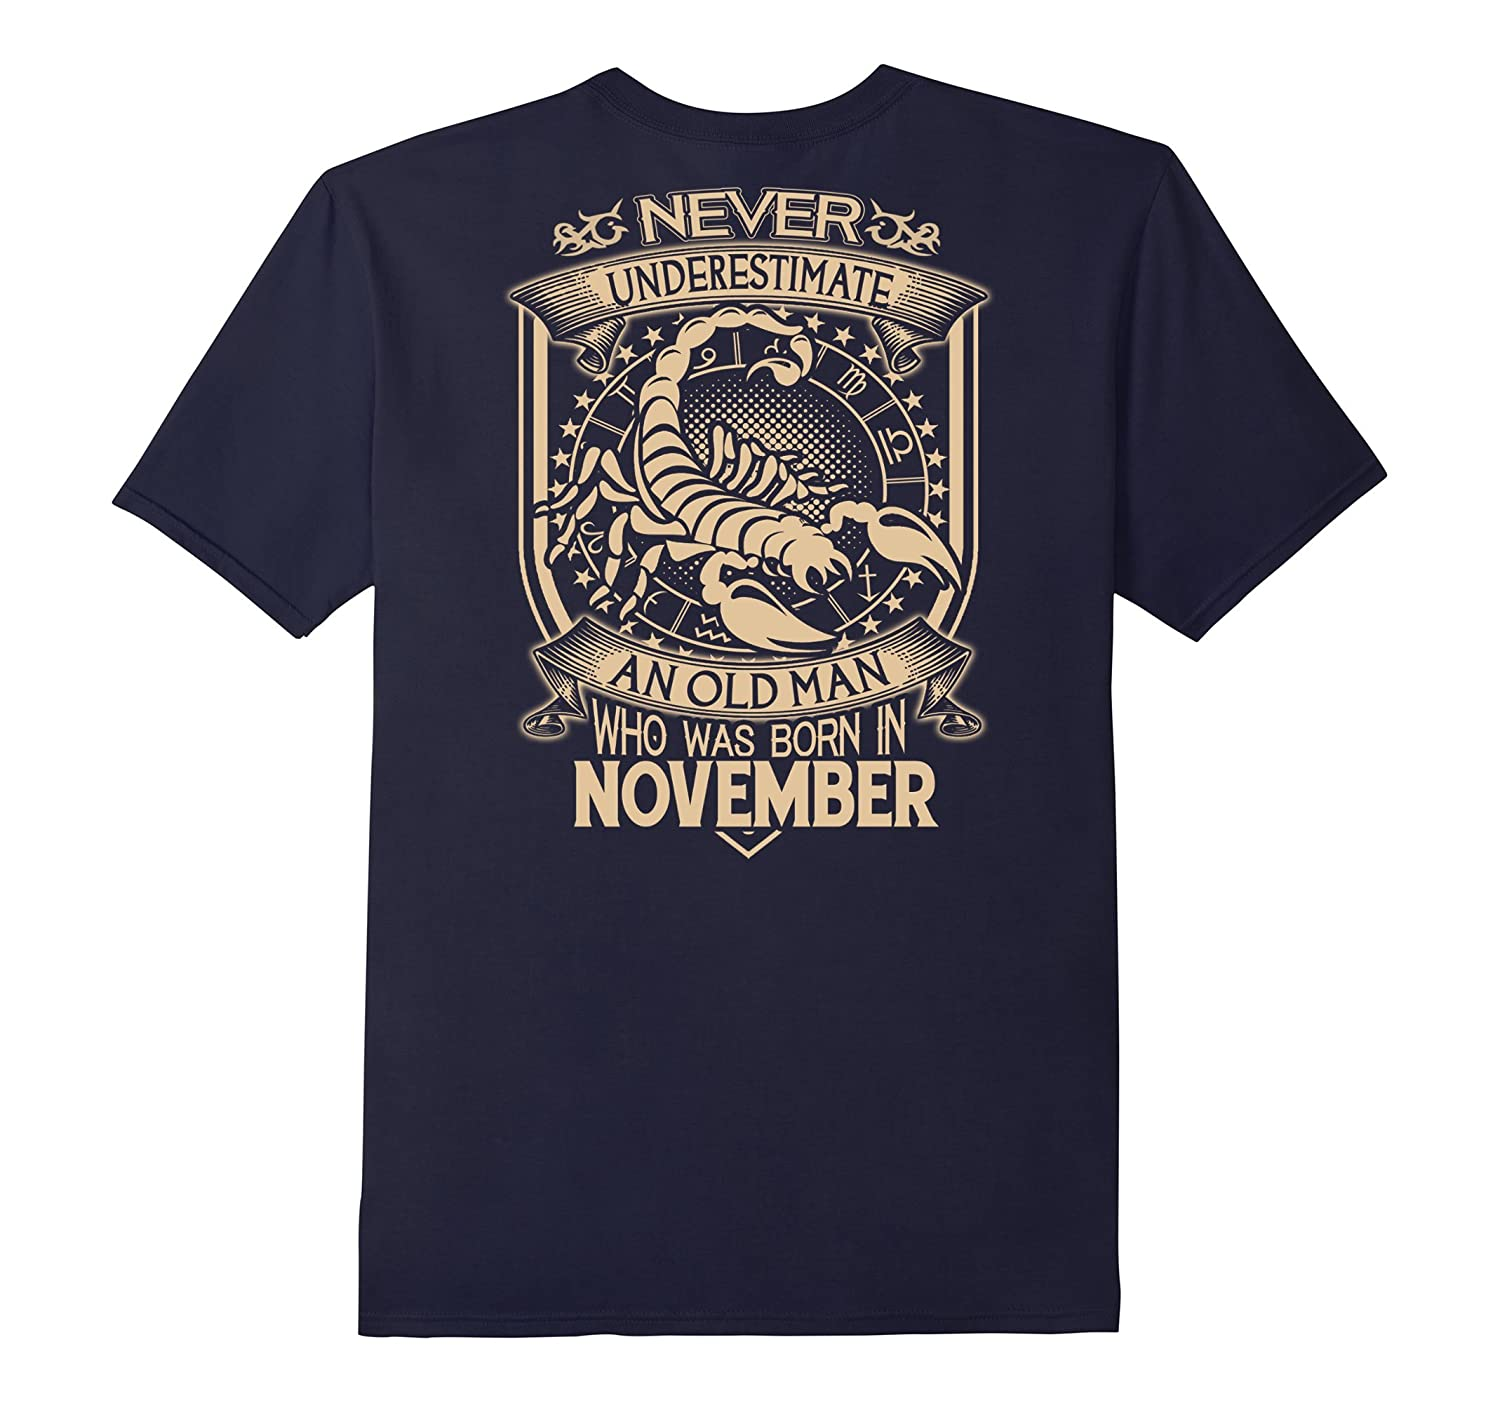 An Old Man Who Was Born In November T-Shirt-BN